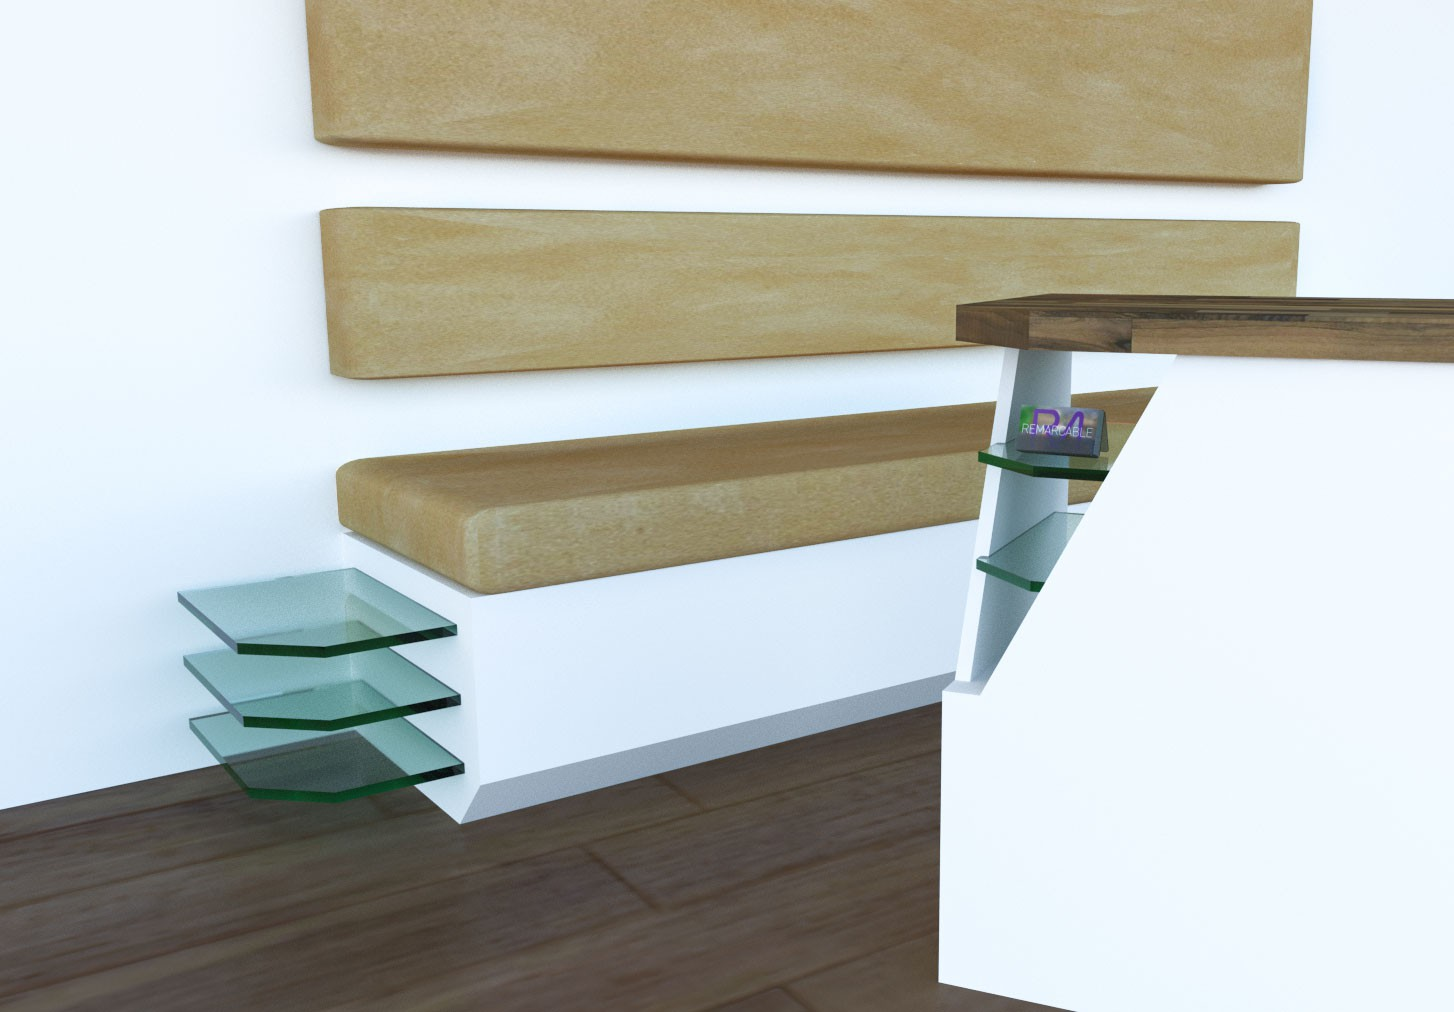 A graphic designed visual for the London Doctors Clinic bespoke banquette a wooden white foundational structure with beige padded seating and back support with in-built glass shelves on the side